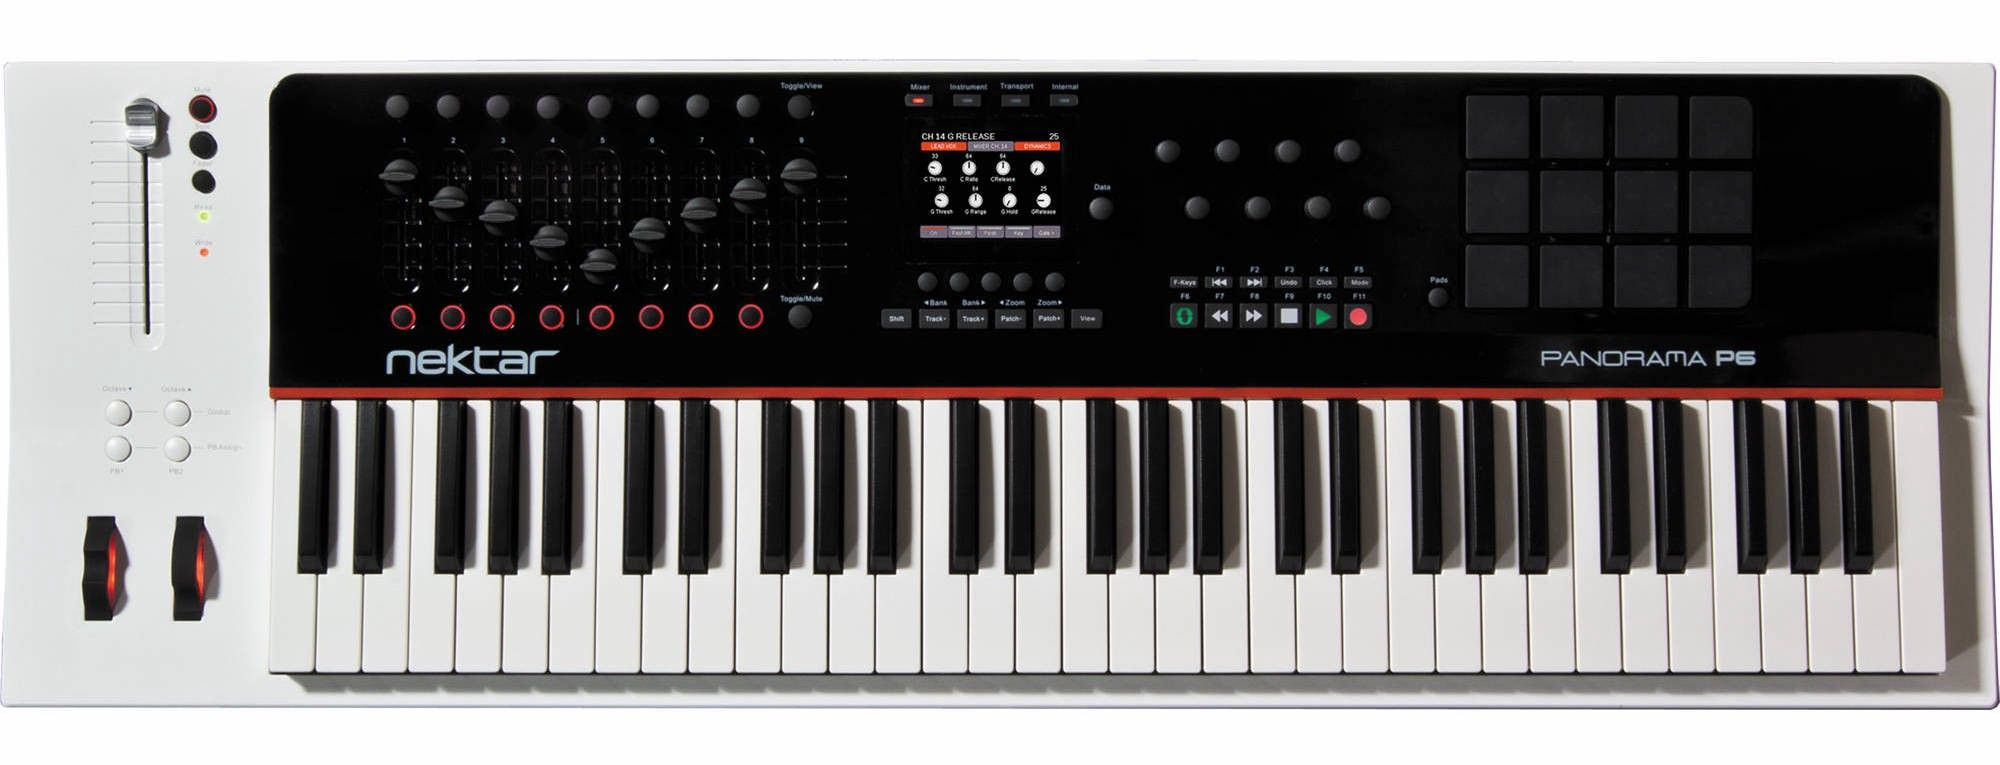 This is the MIDI keyboard I use, in case anyone is curious. It's a Nektar Panorama P6.